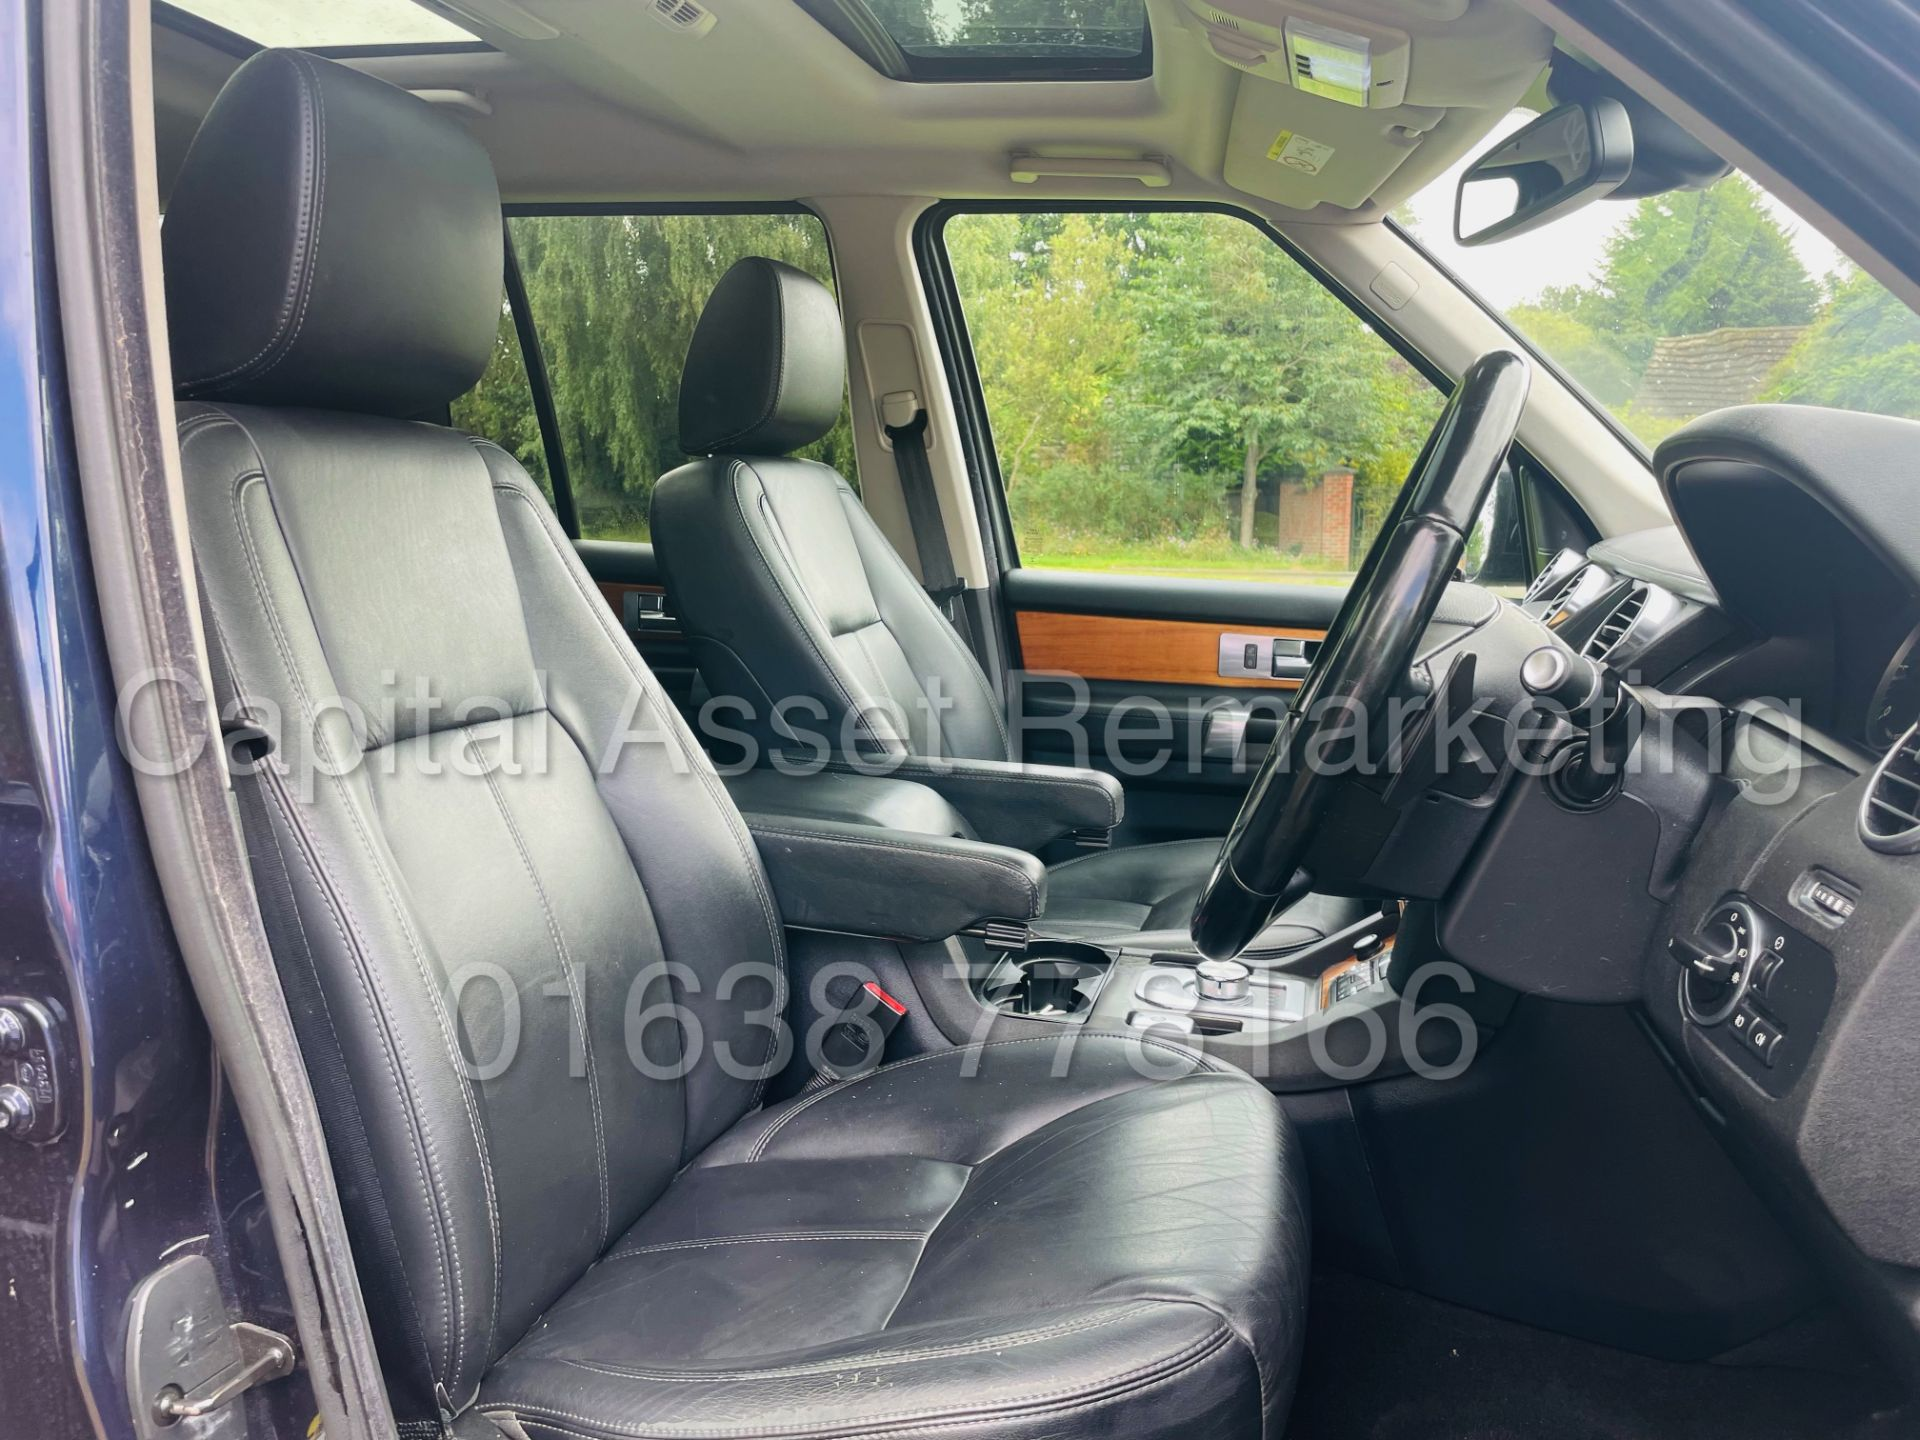 LAND ROVER DISCOVERY 4 *HSE* 7 SEATER SUV (2014 - NEW MODEL) '3.0 SDV6 - 255 BHP - 8 SPEED AUTO' - Image 42 of 61